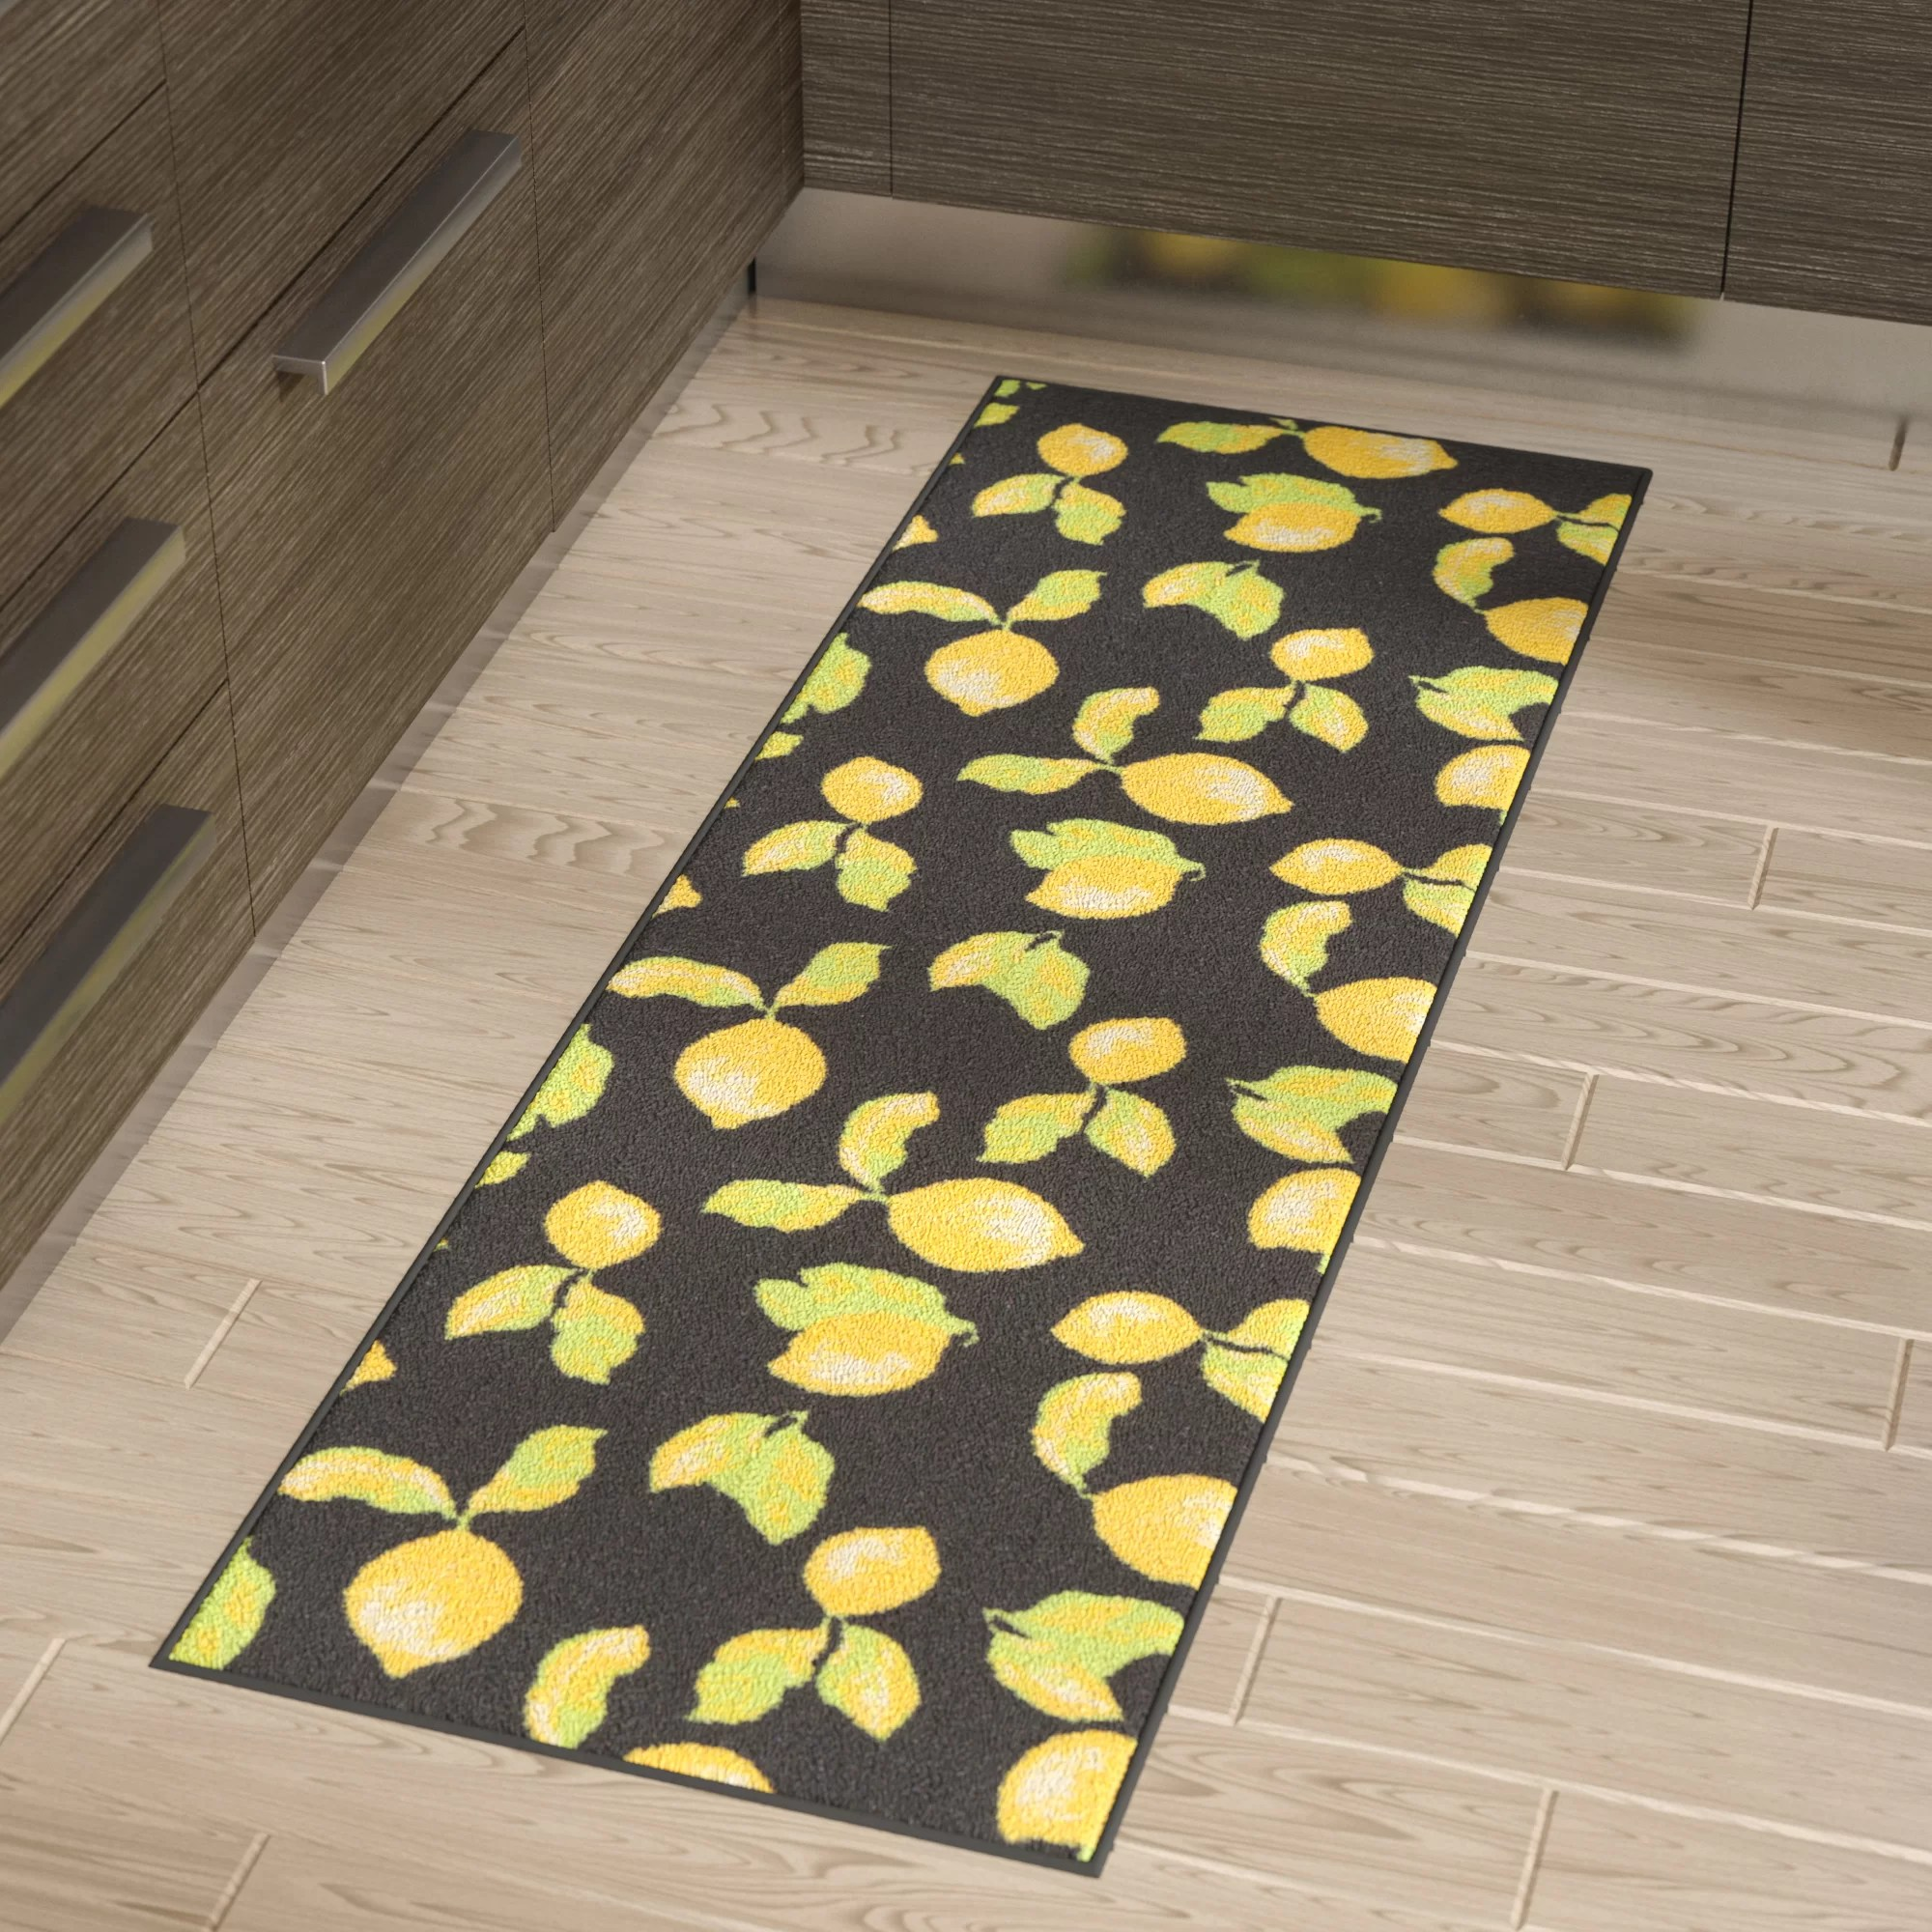 Viva Garage Floor Mats Barbonne Kitchen And Bathroom Mat